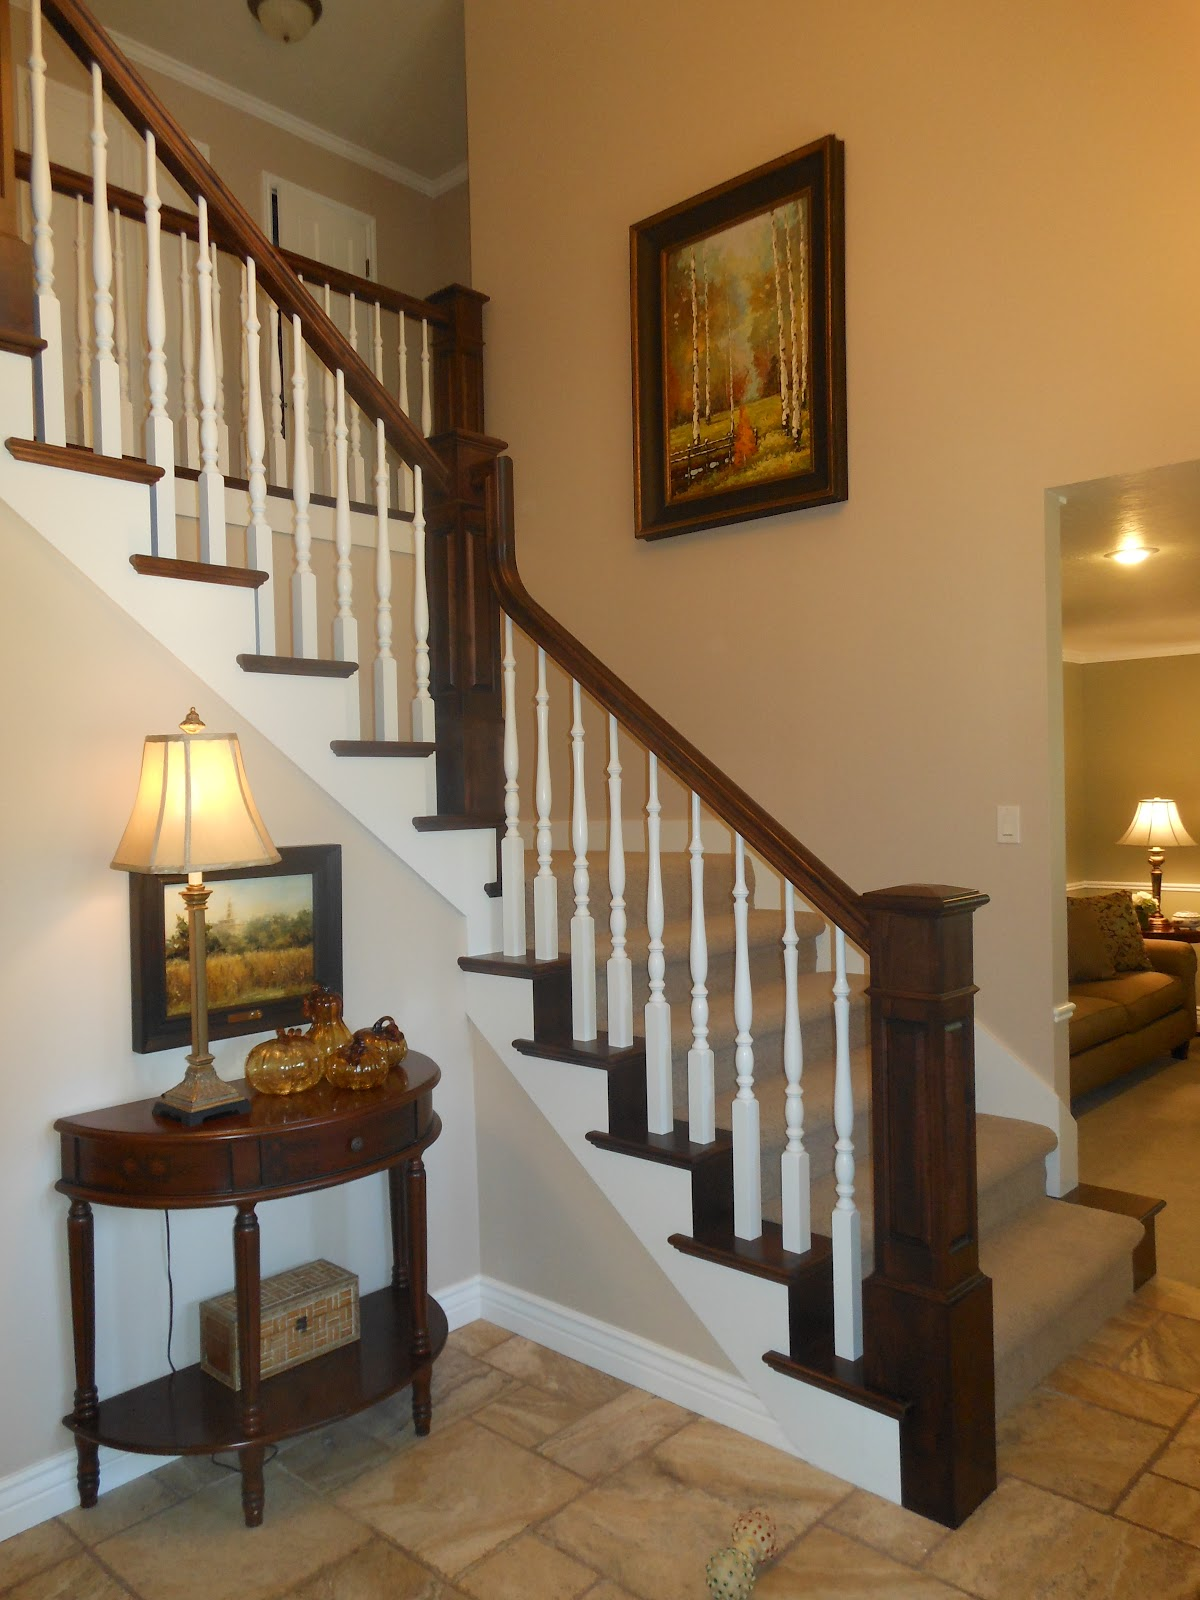 Studio 7 interior design client reveal traditional foyer - What is a foyer ...